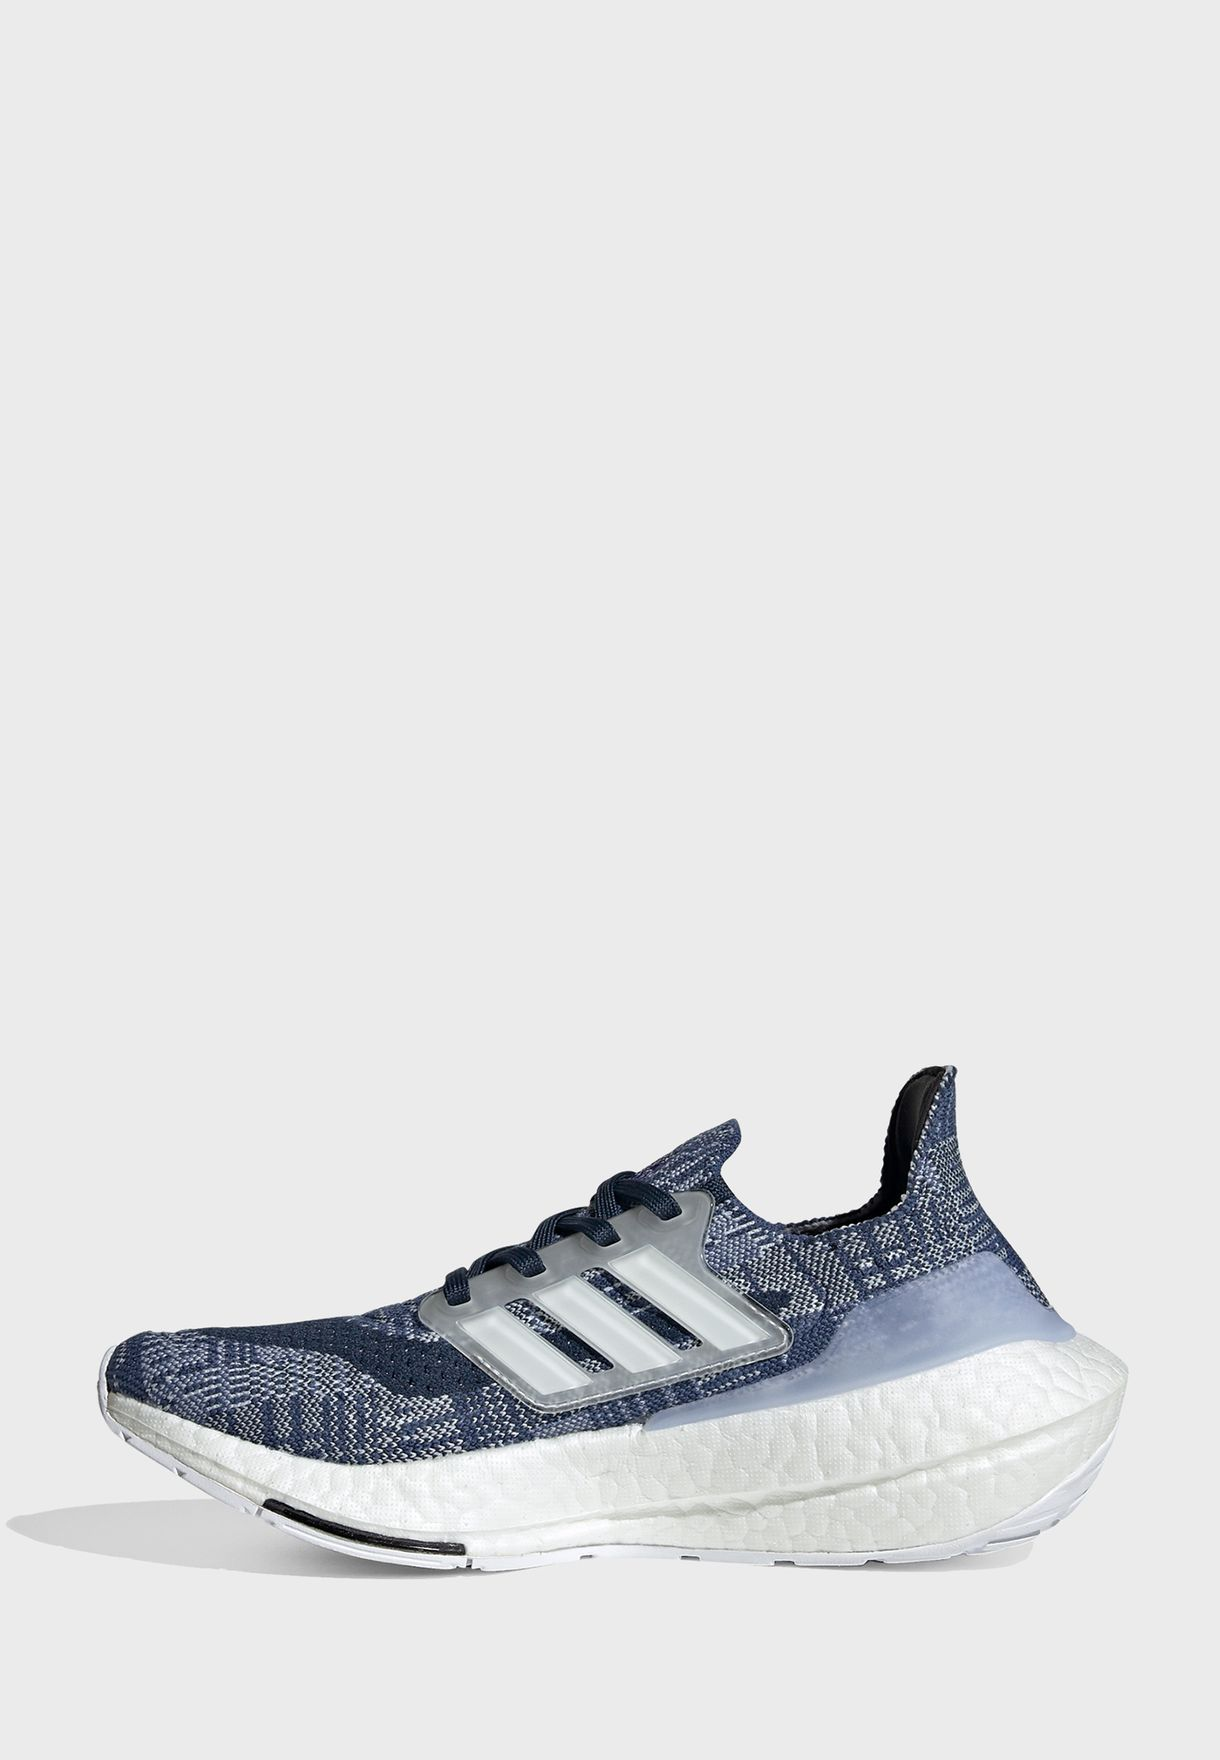 Youth Ultraboost 21 Prime